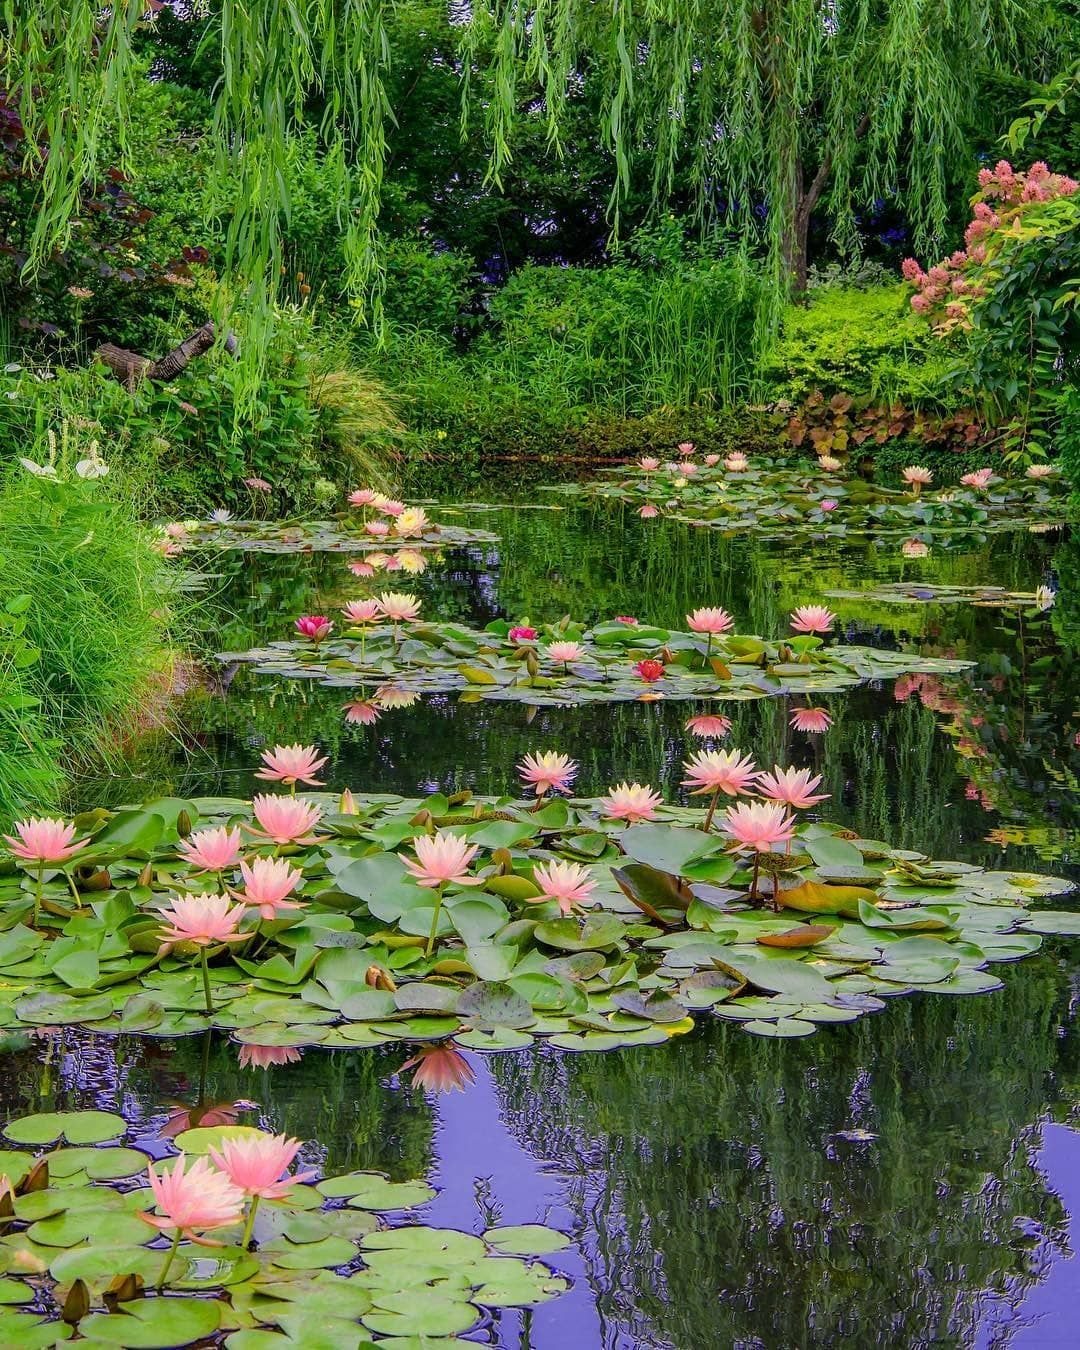 Waterlilies 1 Or 2 Ohmygod1012 Photo Selected By Ponyfony Thank You Beautiful Gardens Beautiful Nature Beautiful Landscapes